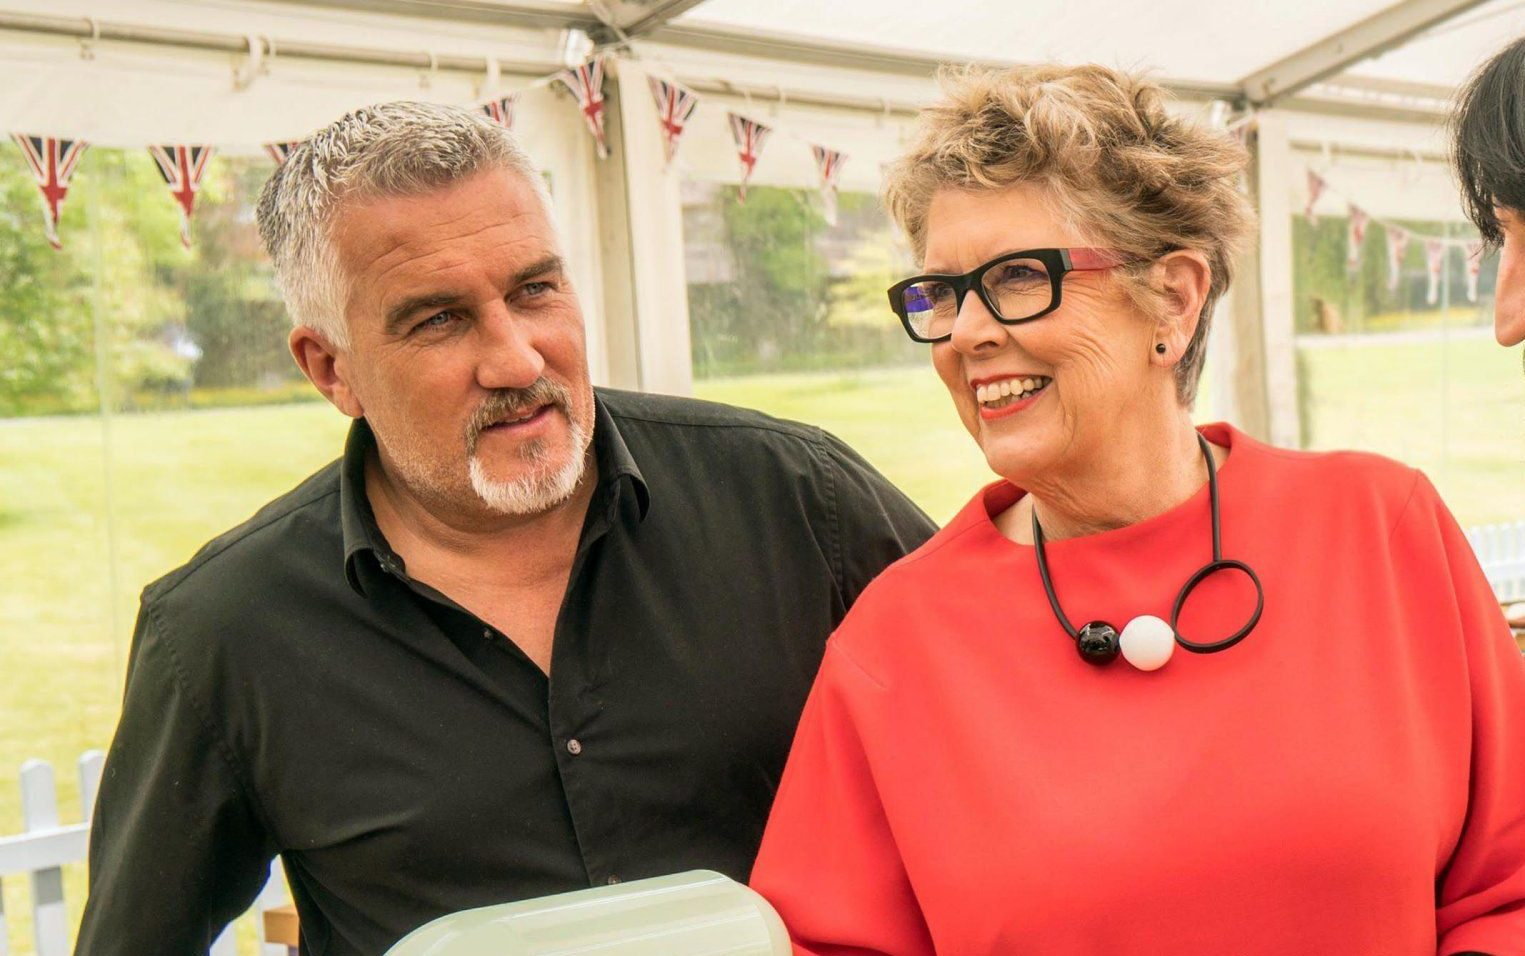 What time is The Great British Bake Off on tonight?